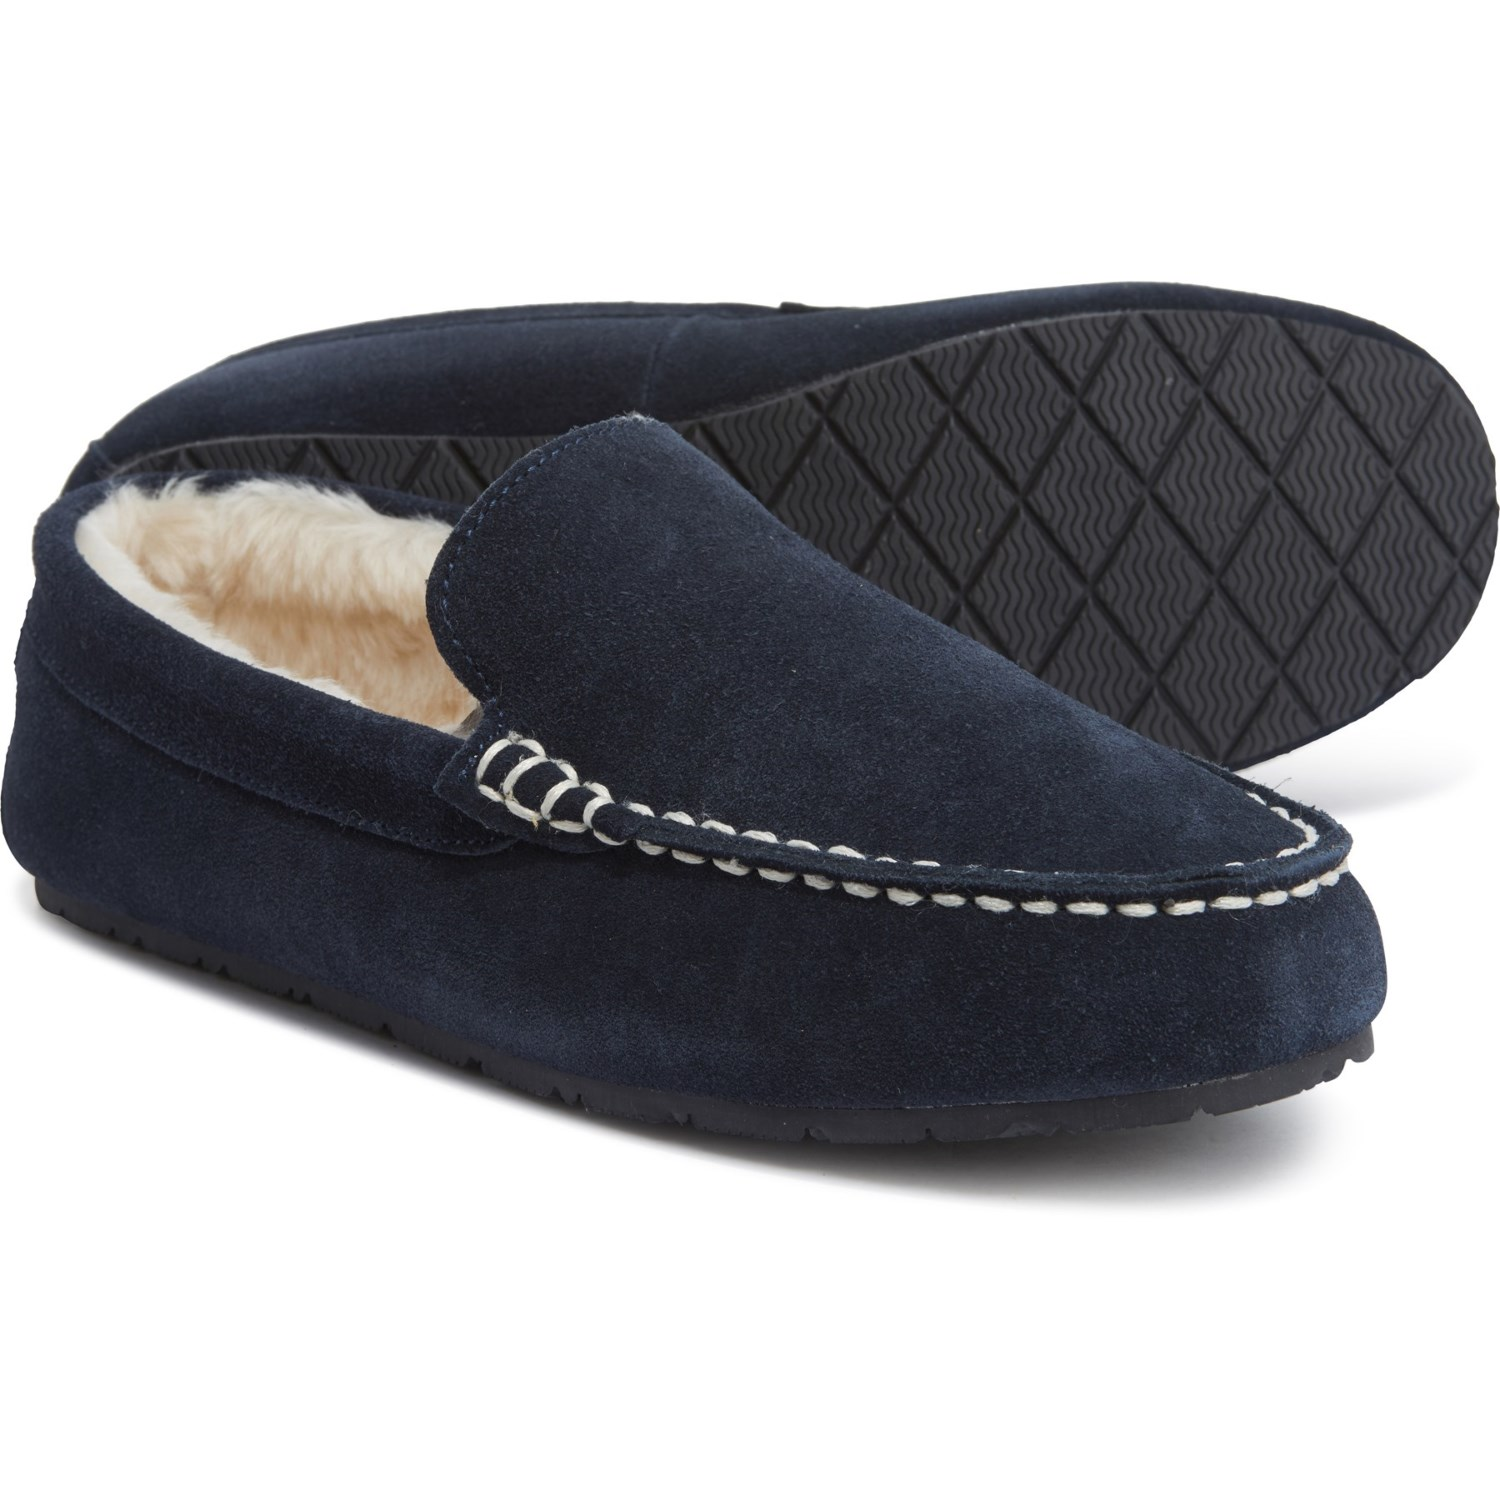 Clarks Suede Moccasin Slippers (For Men